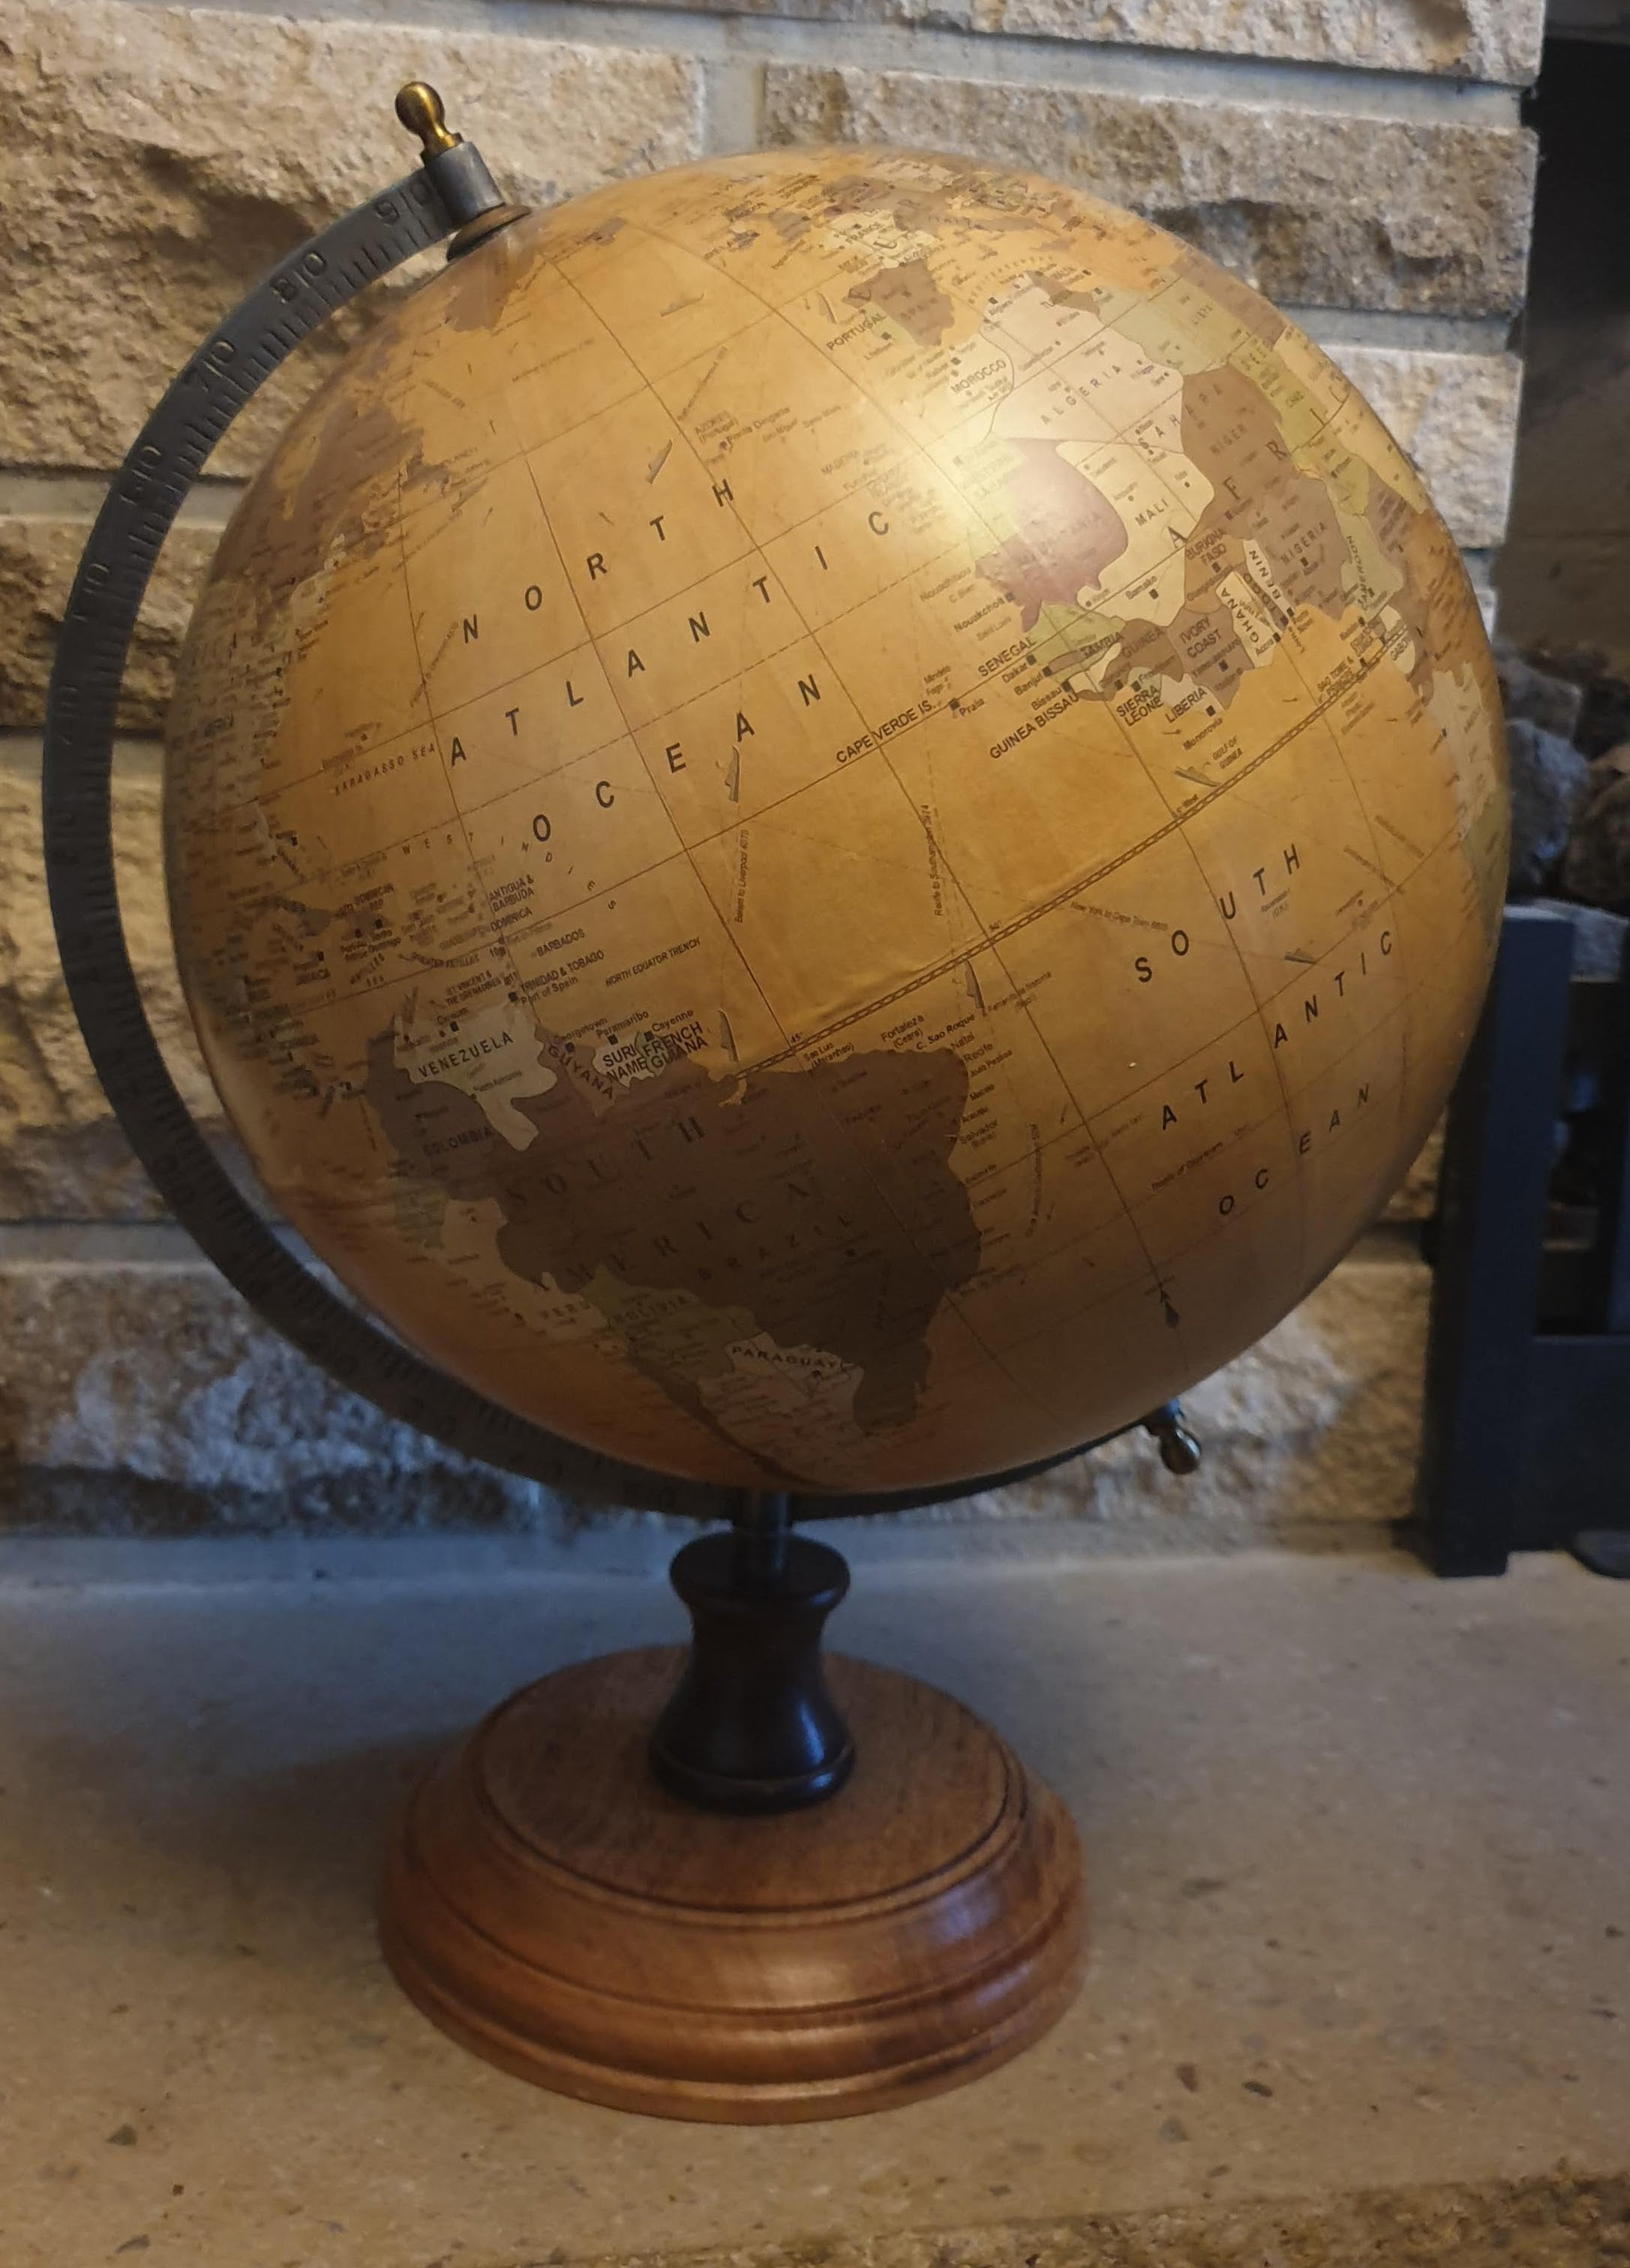 Large Vintage Look Globe with Round Wooden Base - 42cm high Simply Roka